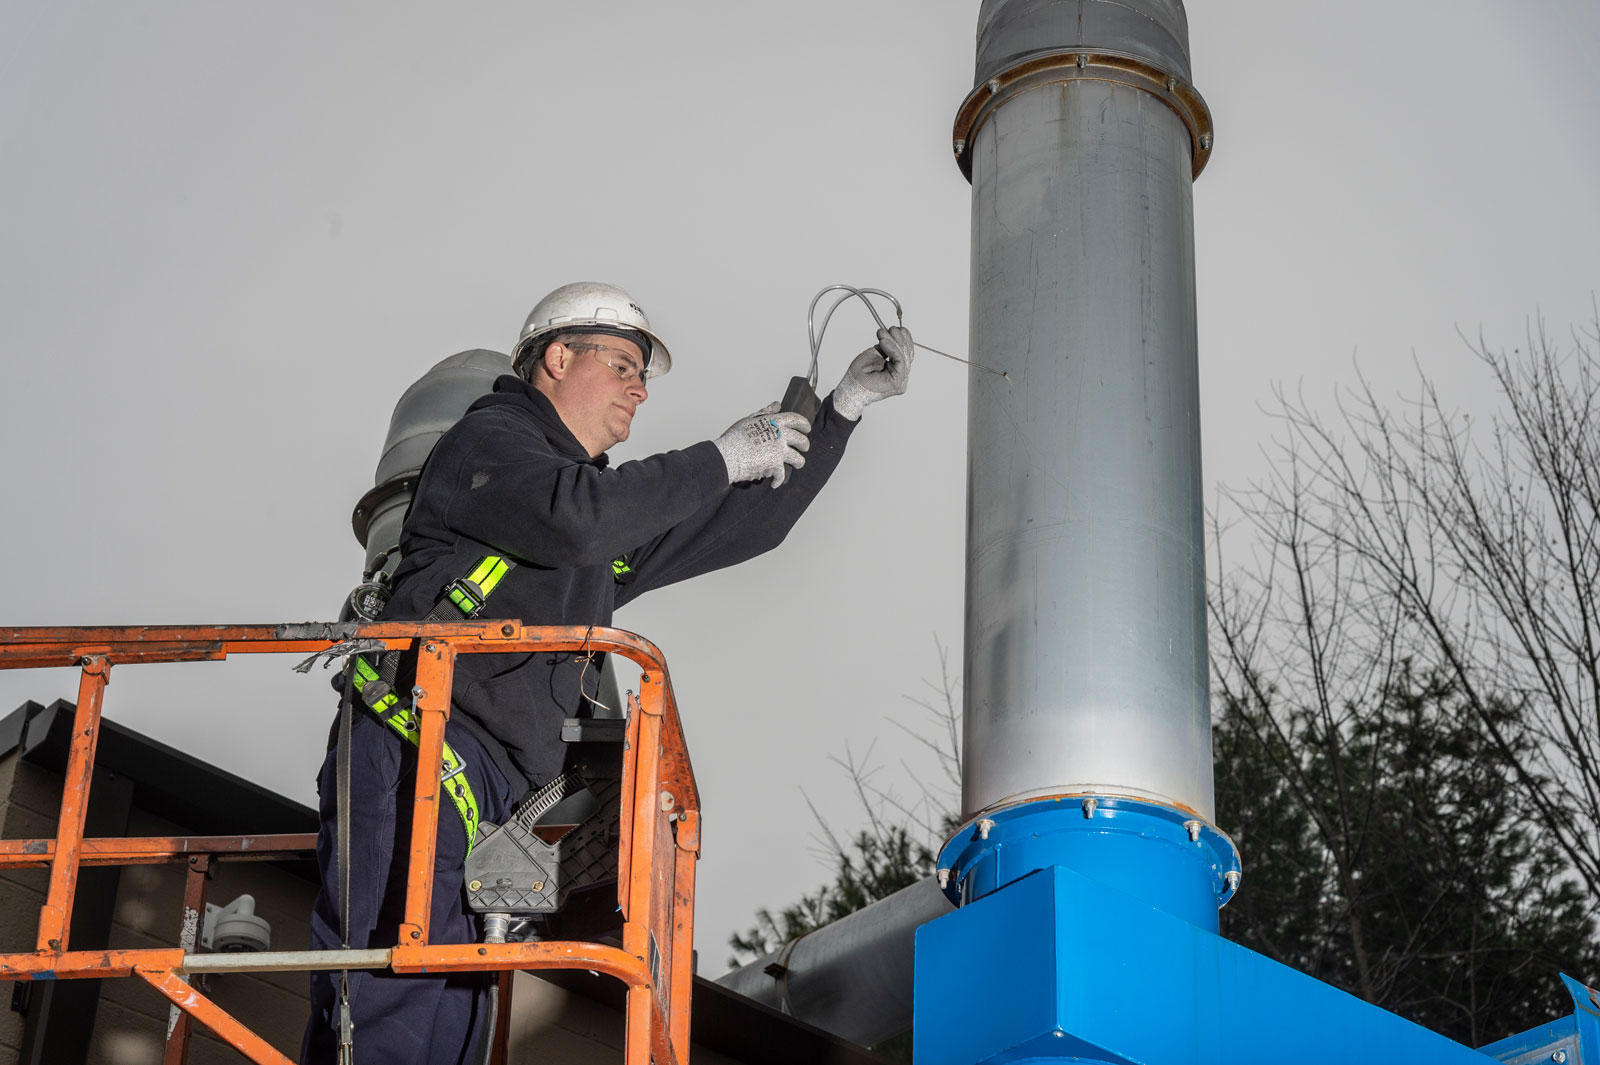 dust collector service technician reading